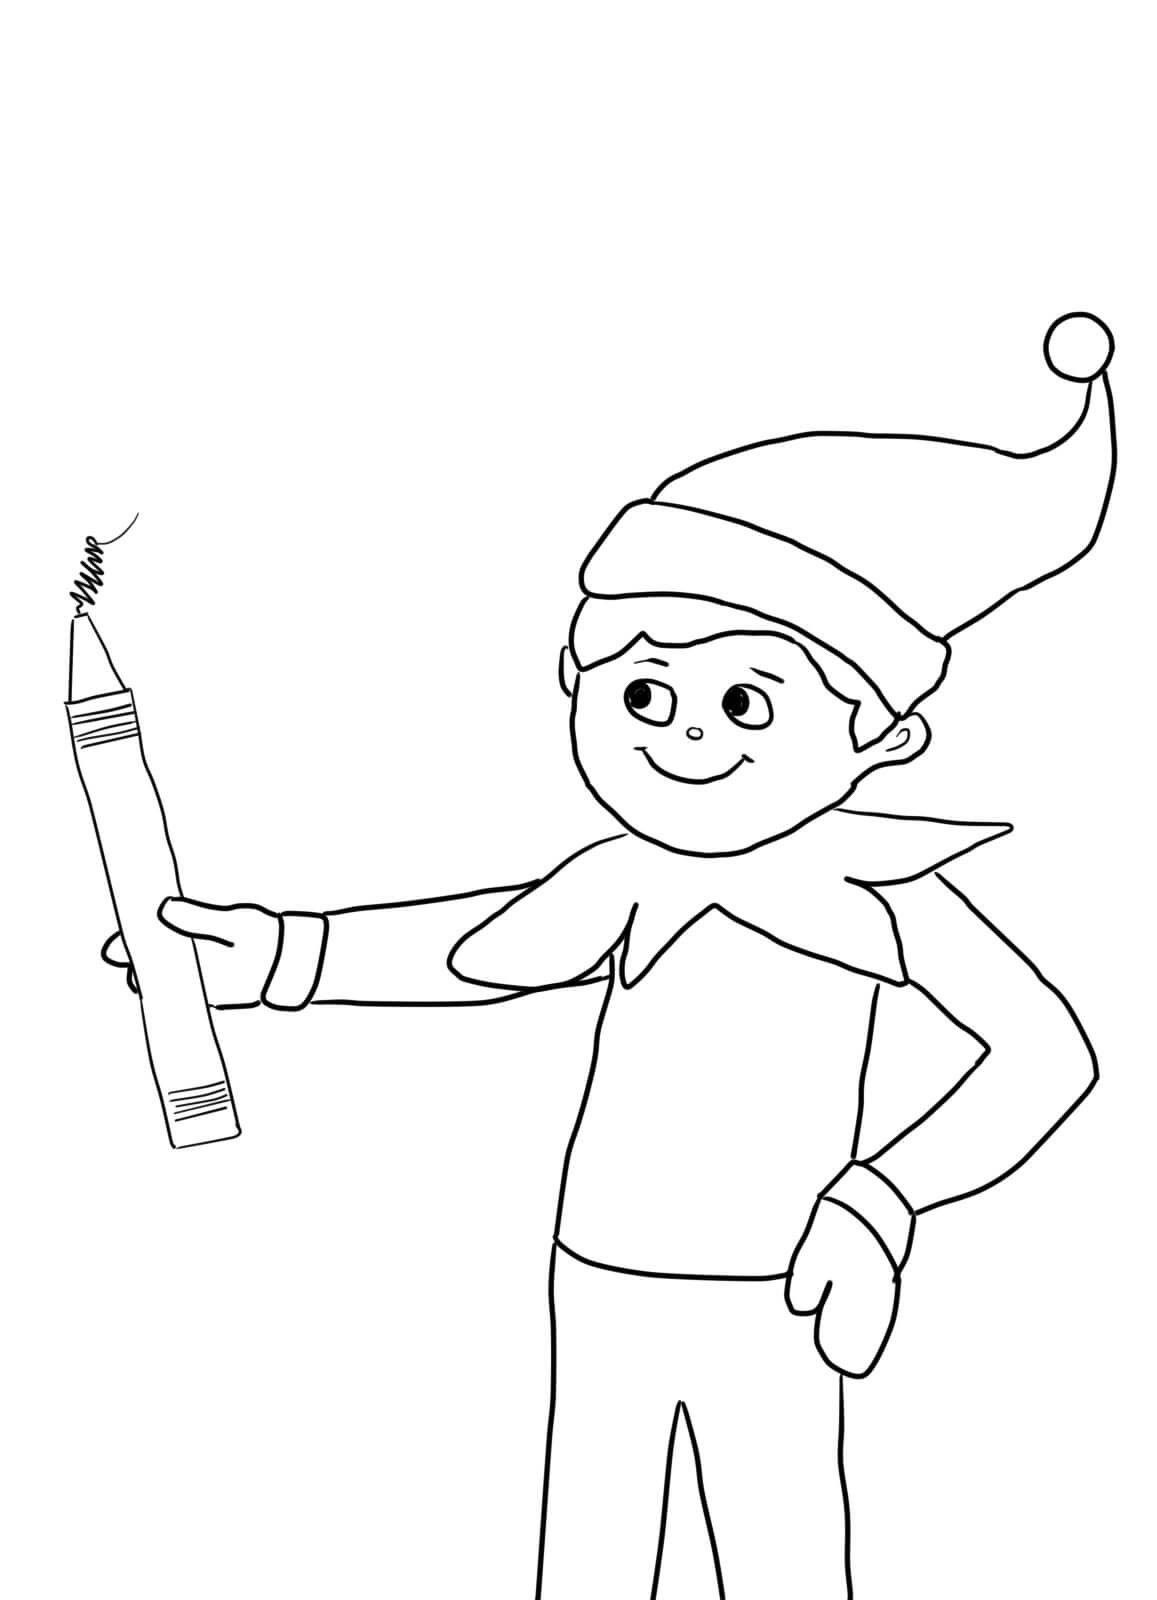 elf on the shelf coloring sheets 1000 images about coloring pages on pinterest coloring the elf shelf on coloring sheets